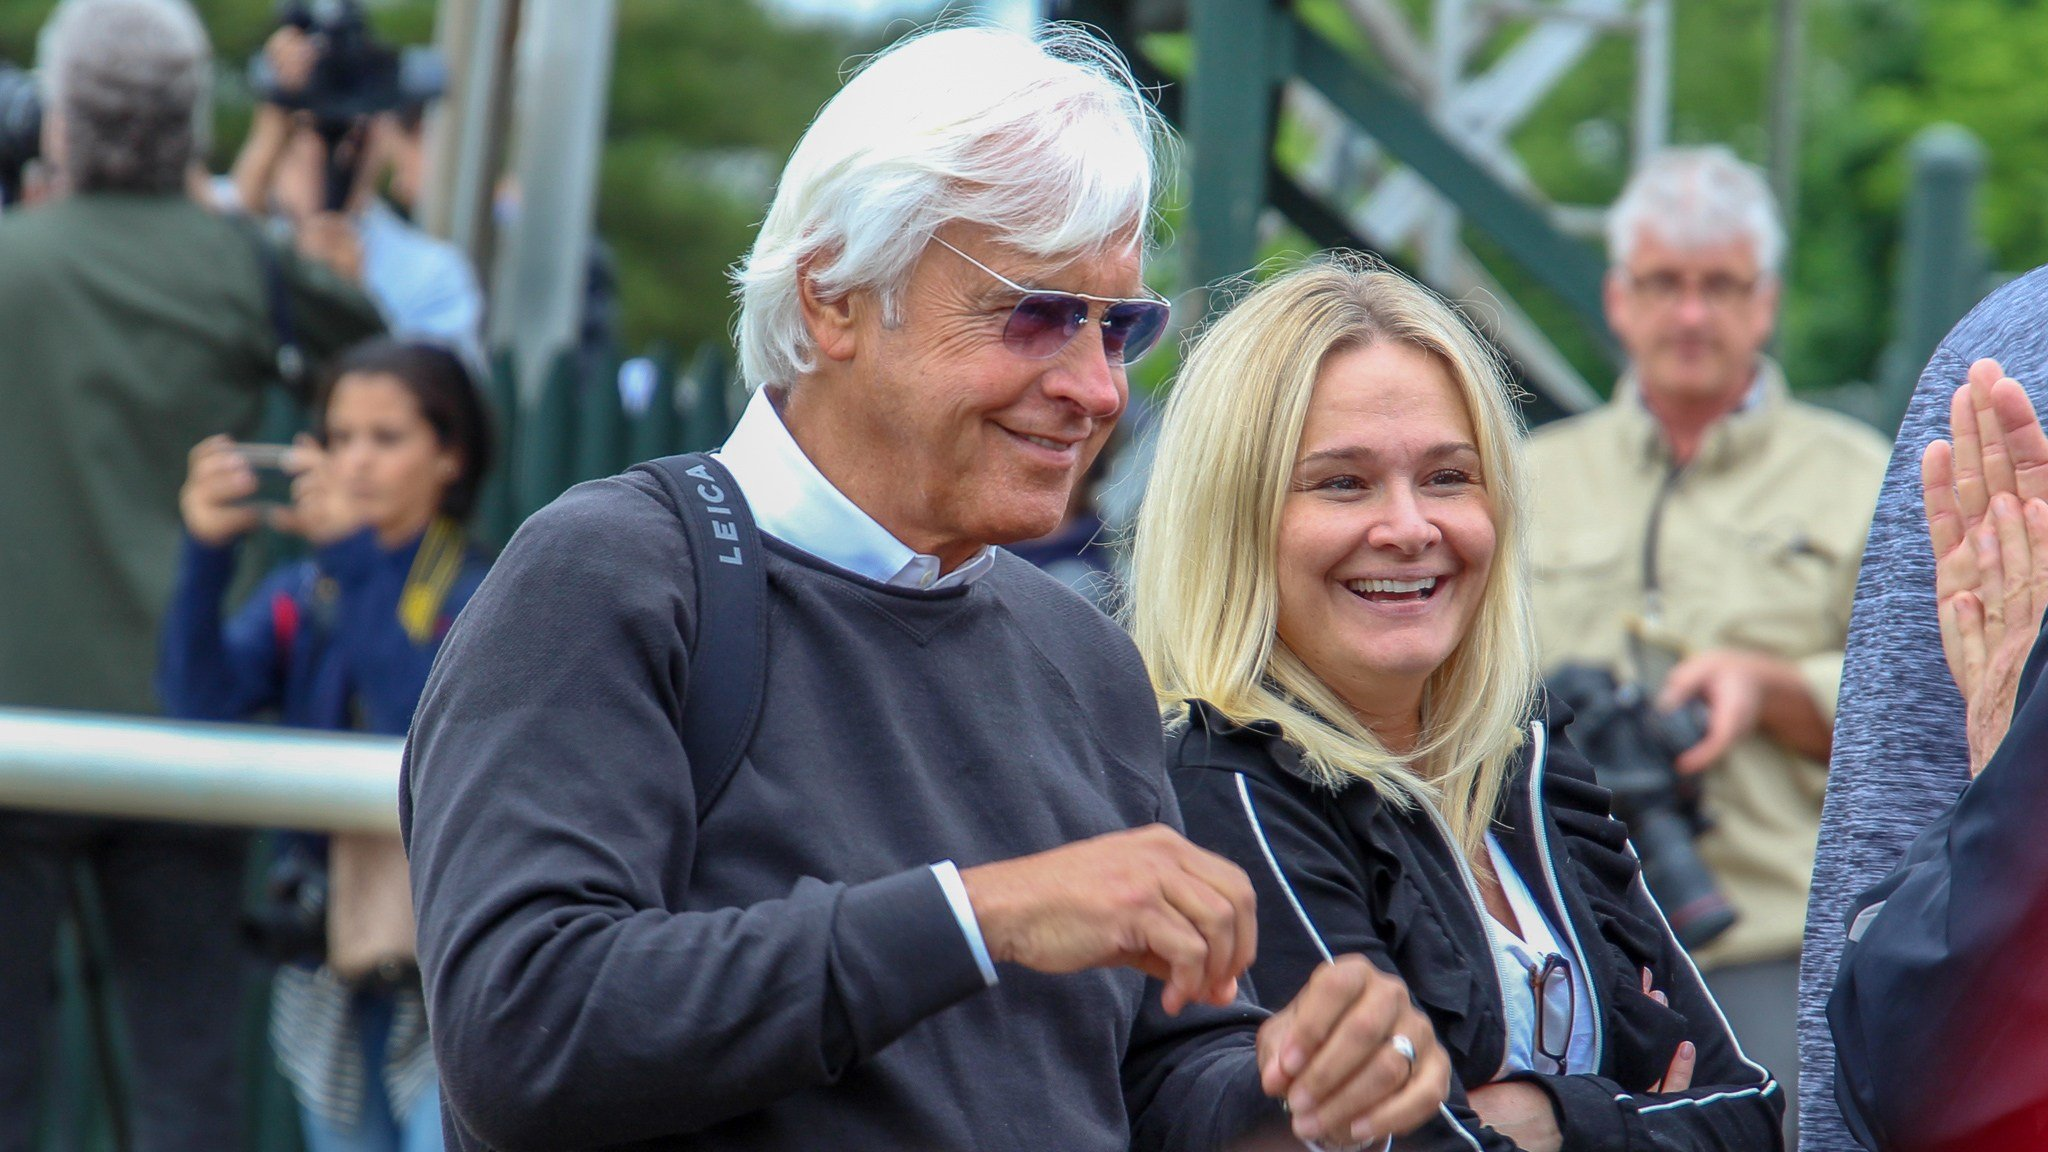 Trainer Bob Baffert, with wife, Jill, reacts to Justify's first Belmont gallop on Thursday (WDRB photo by Eric Crawford)